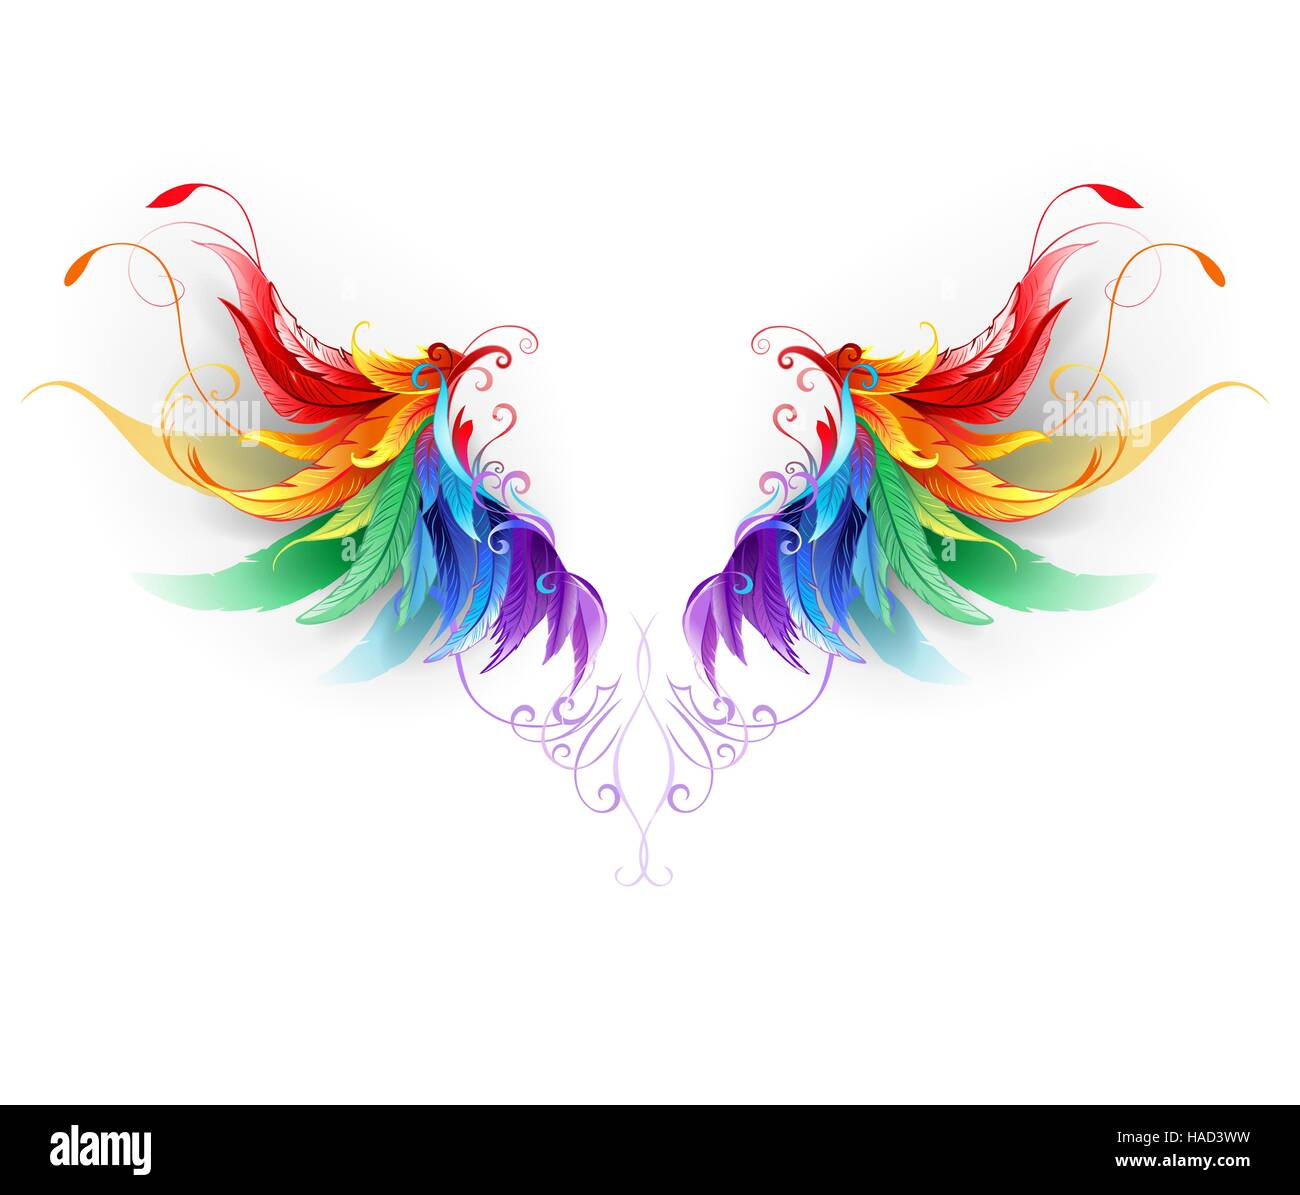 fluffy rainbow wings on a white background. - Stock Vector